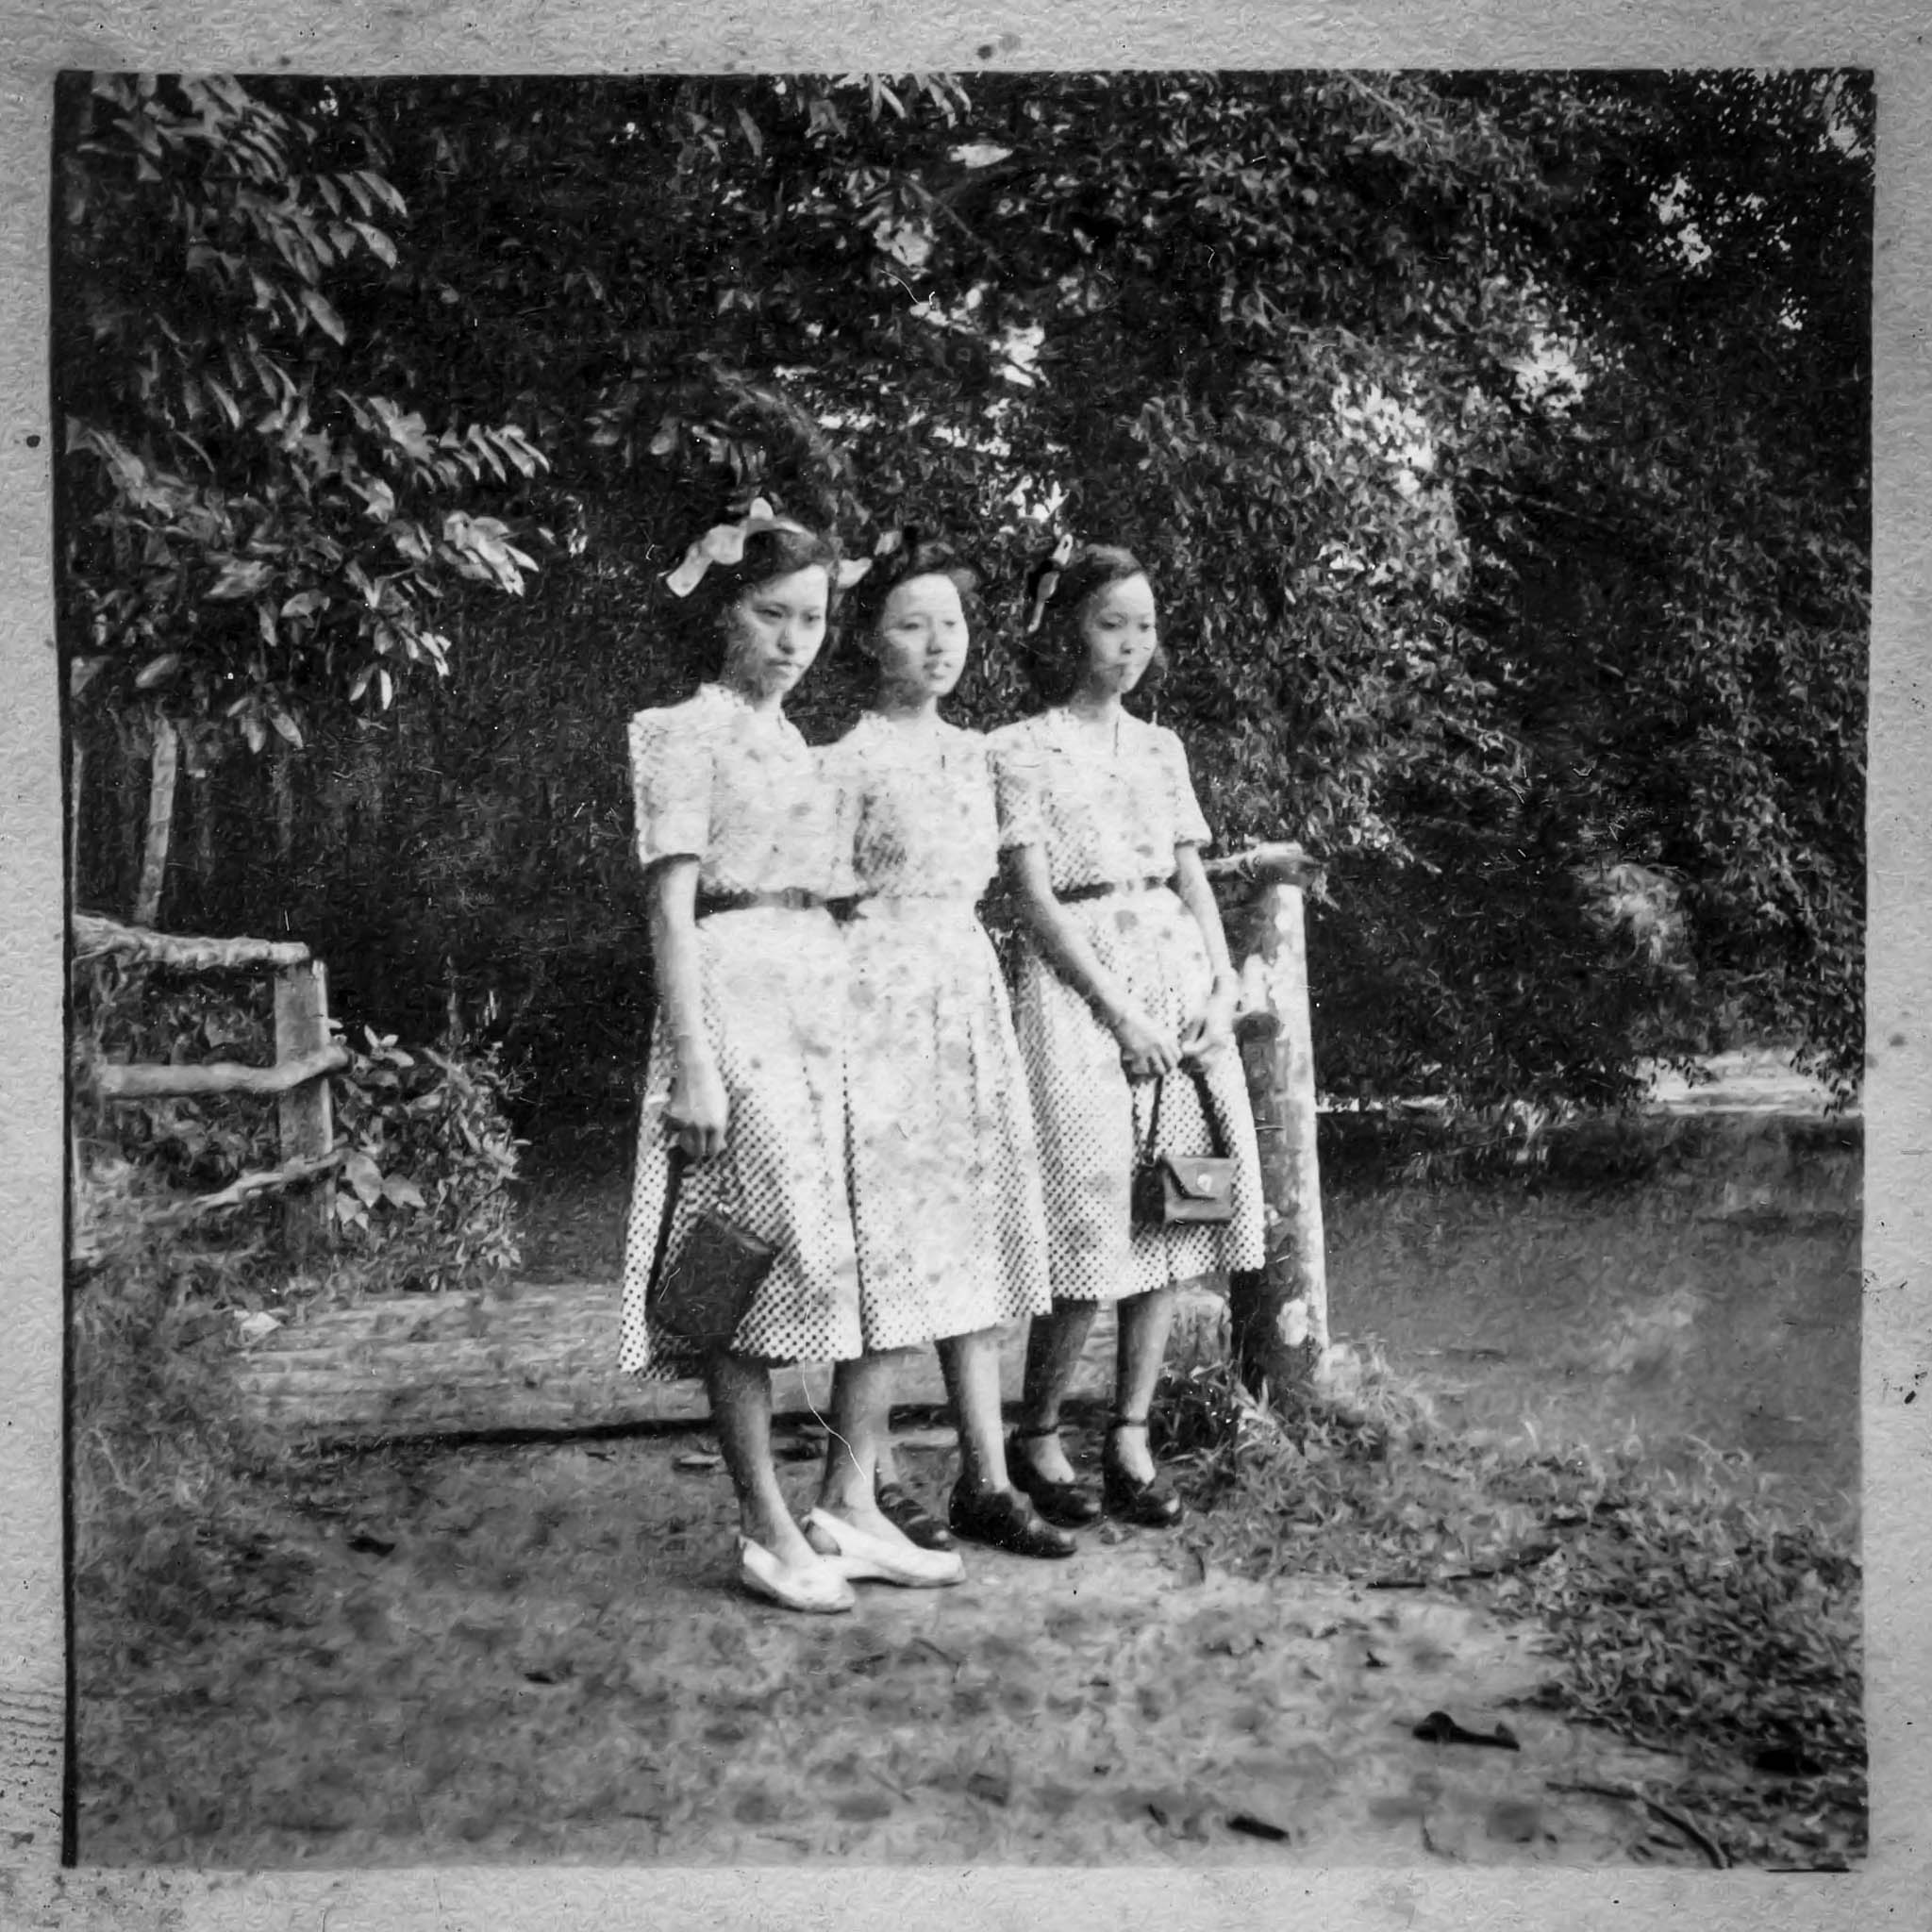 Eldest Brother Brought These Girls To Seking. Girls Were From Mainland. 1955.